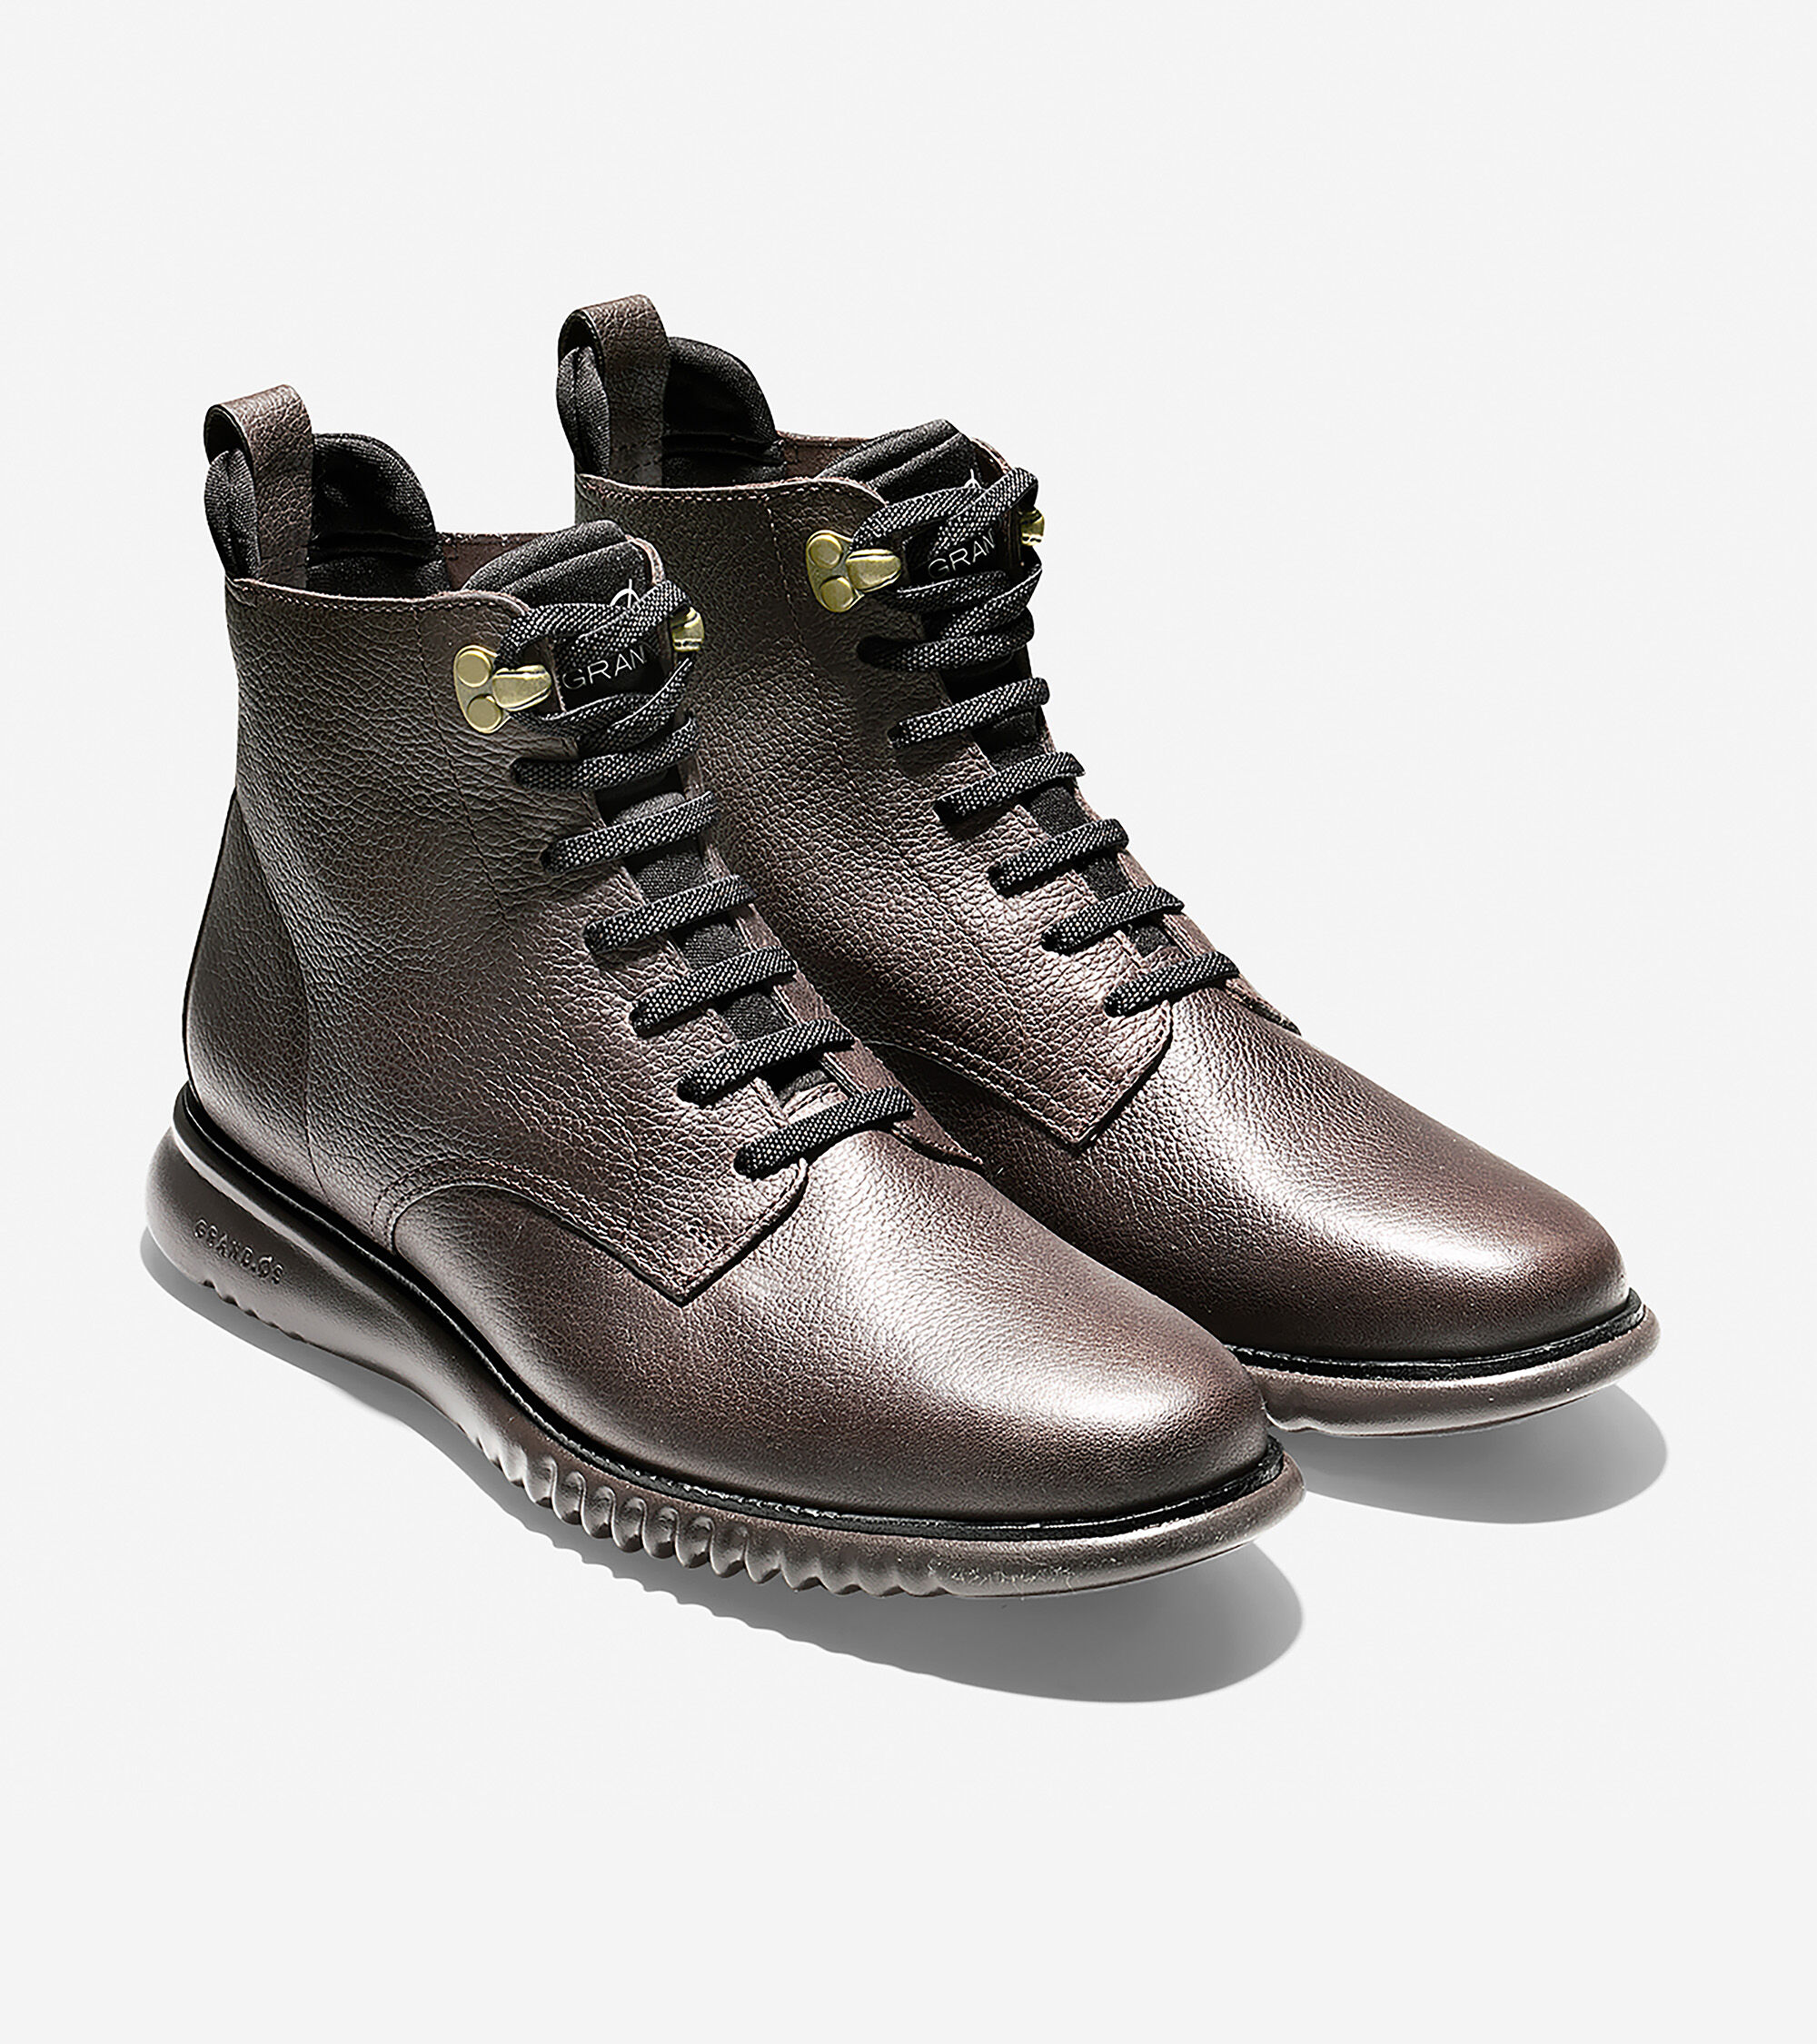 City Boot in Java Leather   Cole Haan